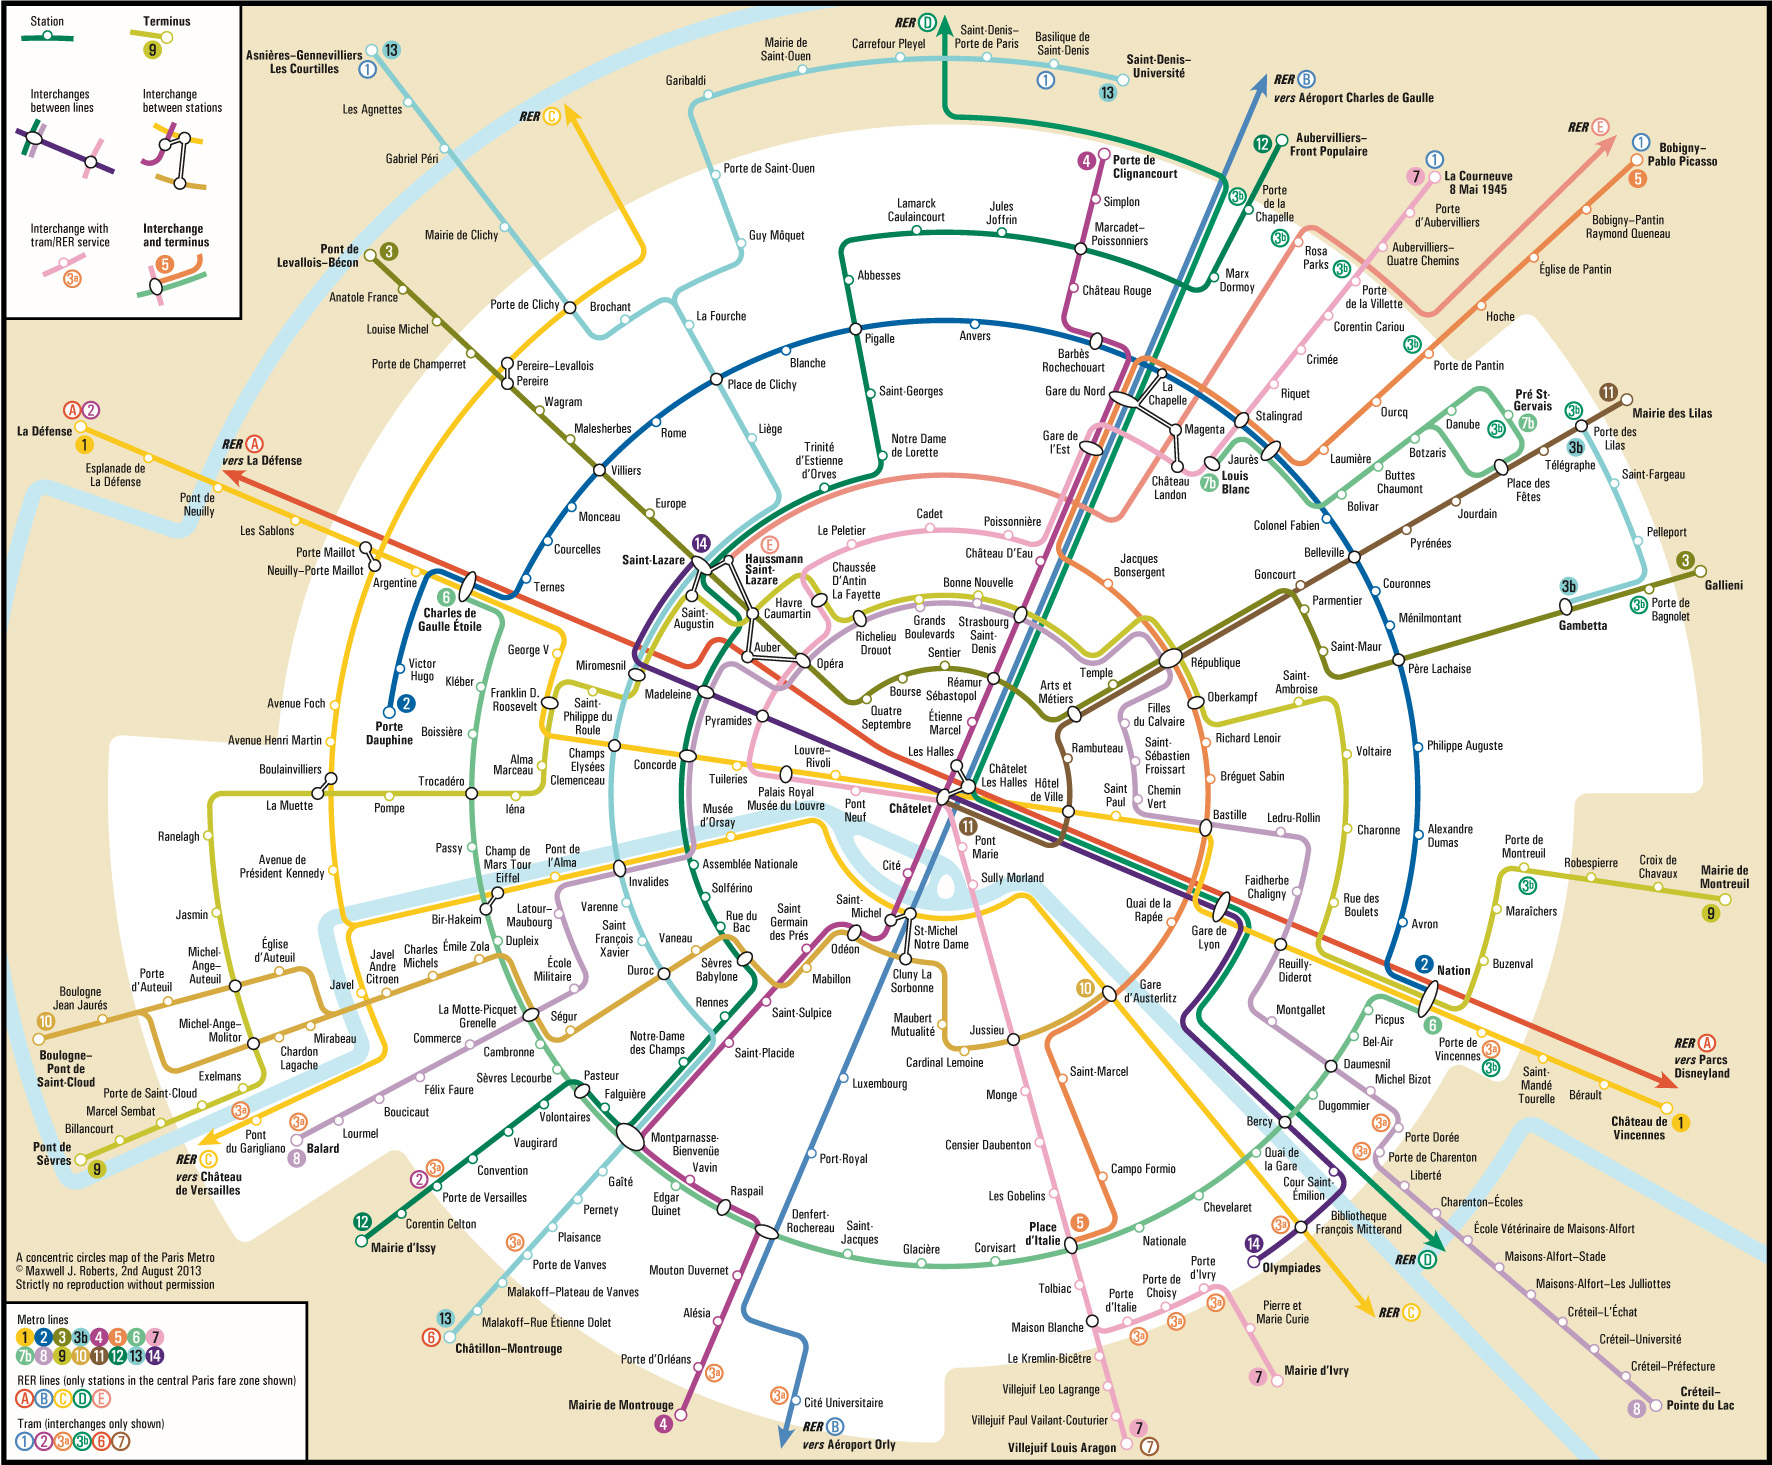 Tube map central web shop print on demand posters circles the metro to get organised gumiabroncs Gallery